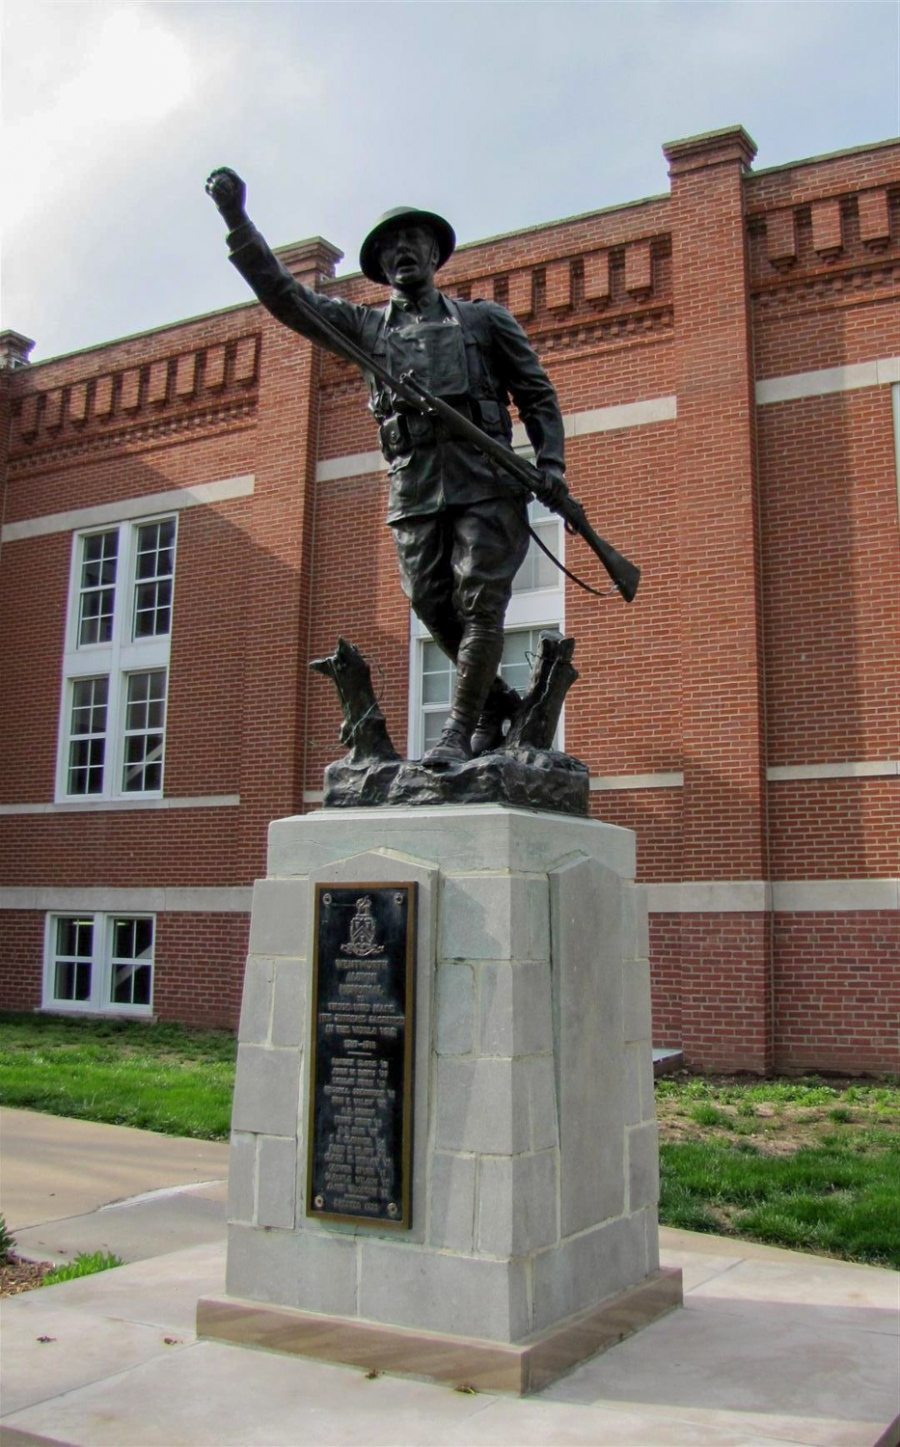 A hearing is set to take place in Lafayette County over Wentworth's WWI 'Doughboy' statue